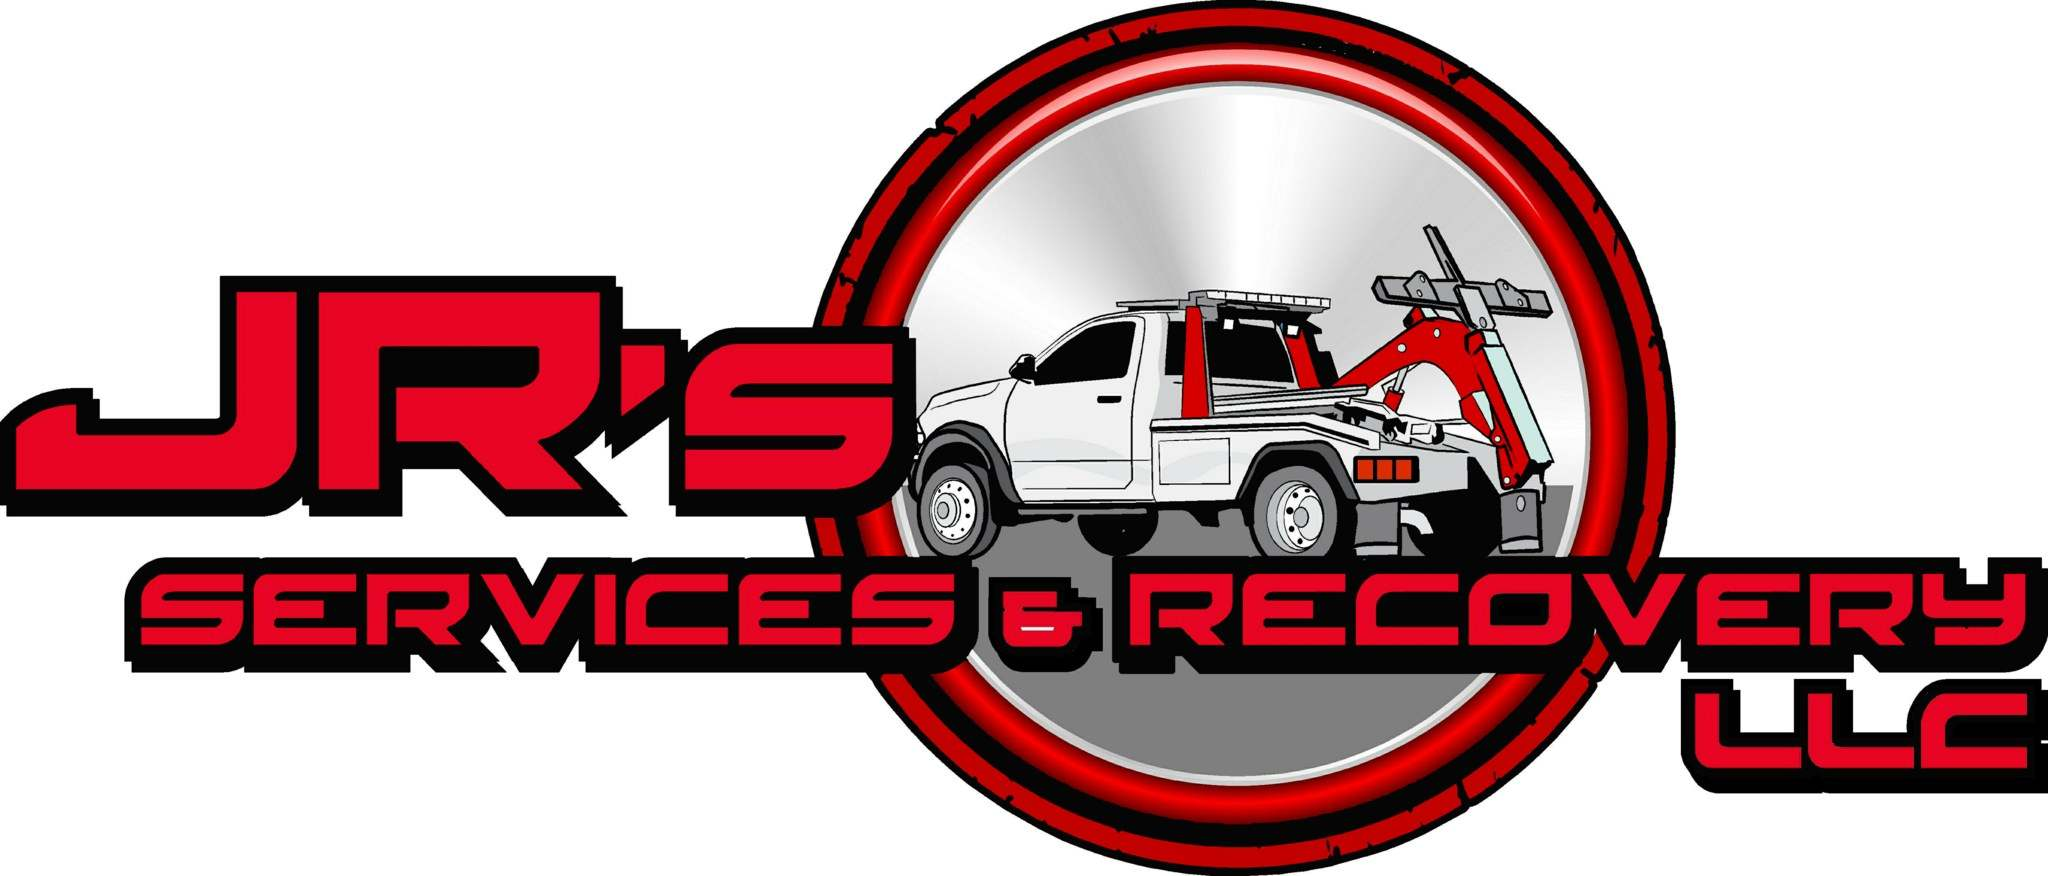 JR's Services & Recovery LLC logo